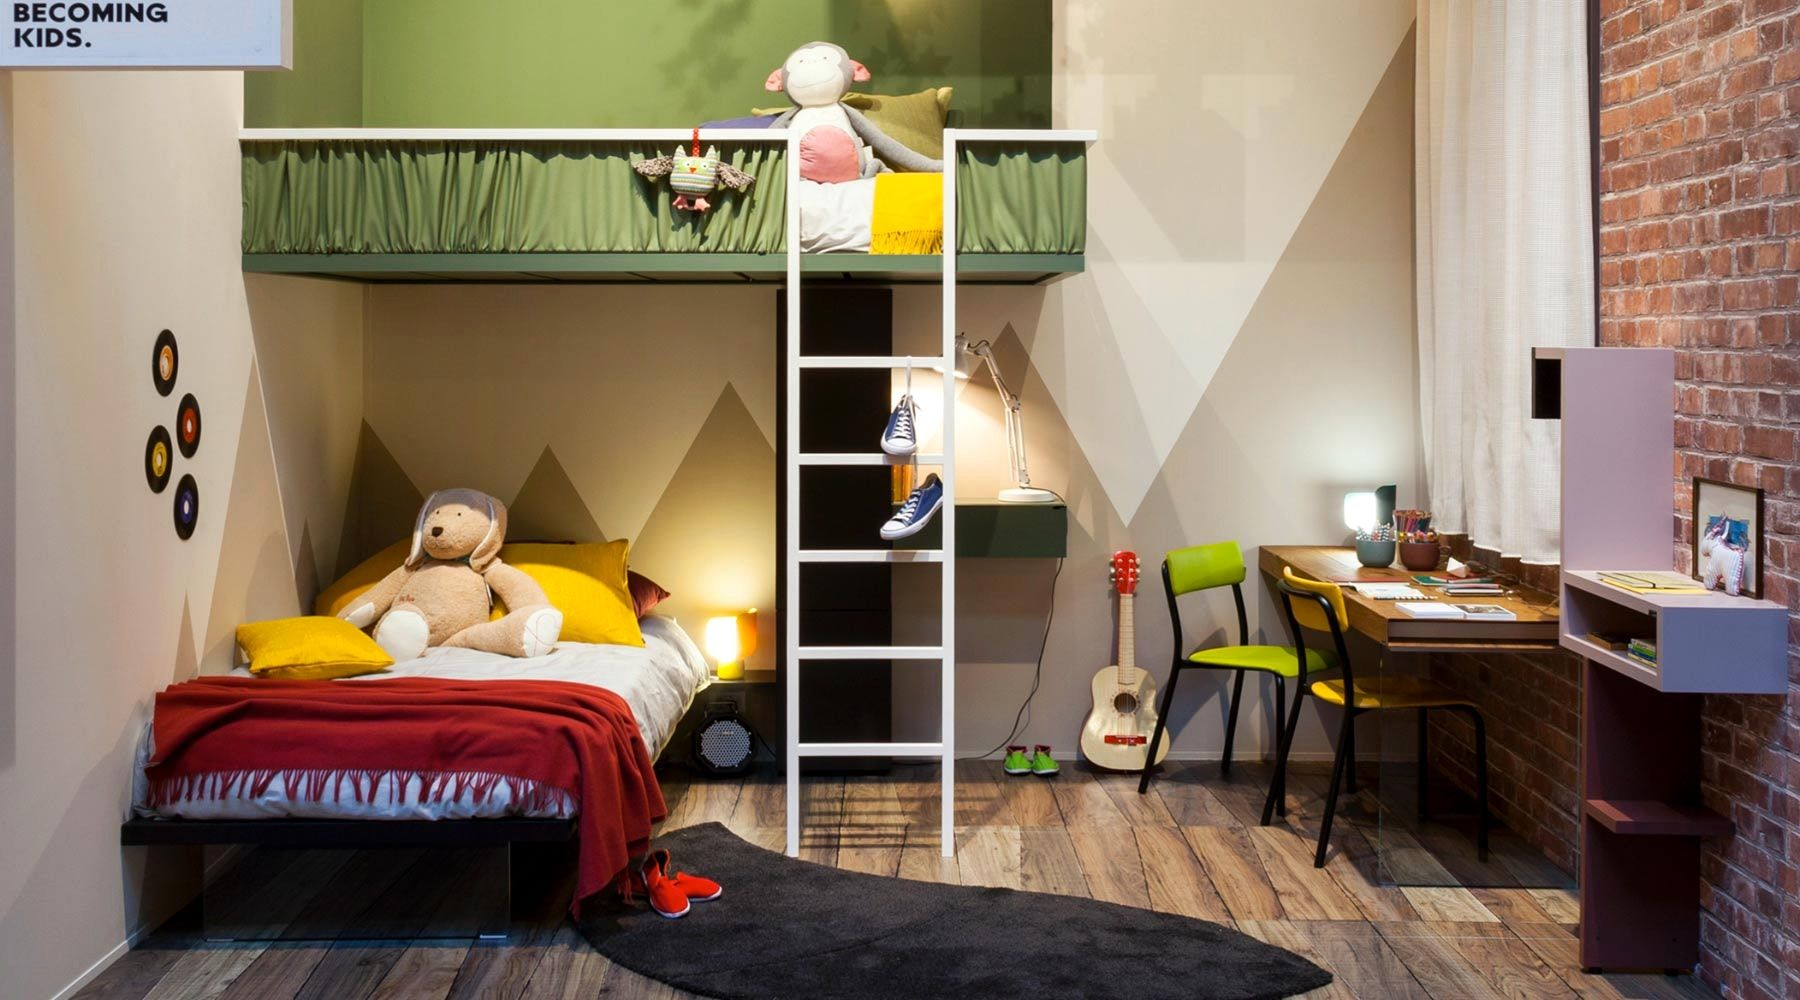 1 bedroom loft apartment  Pin by yara Nayma on Zaandam Renovation  Pinterest  Houzz and Kidsroom